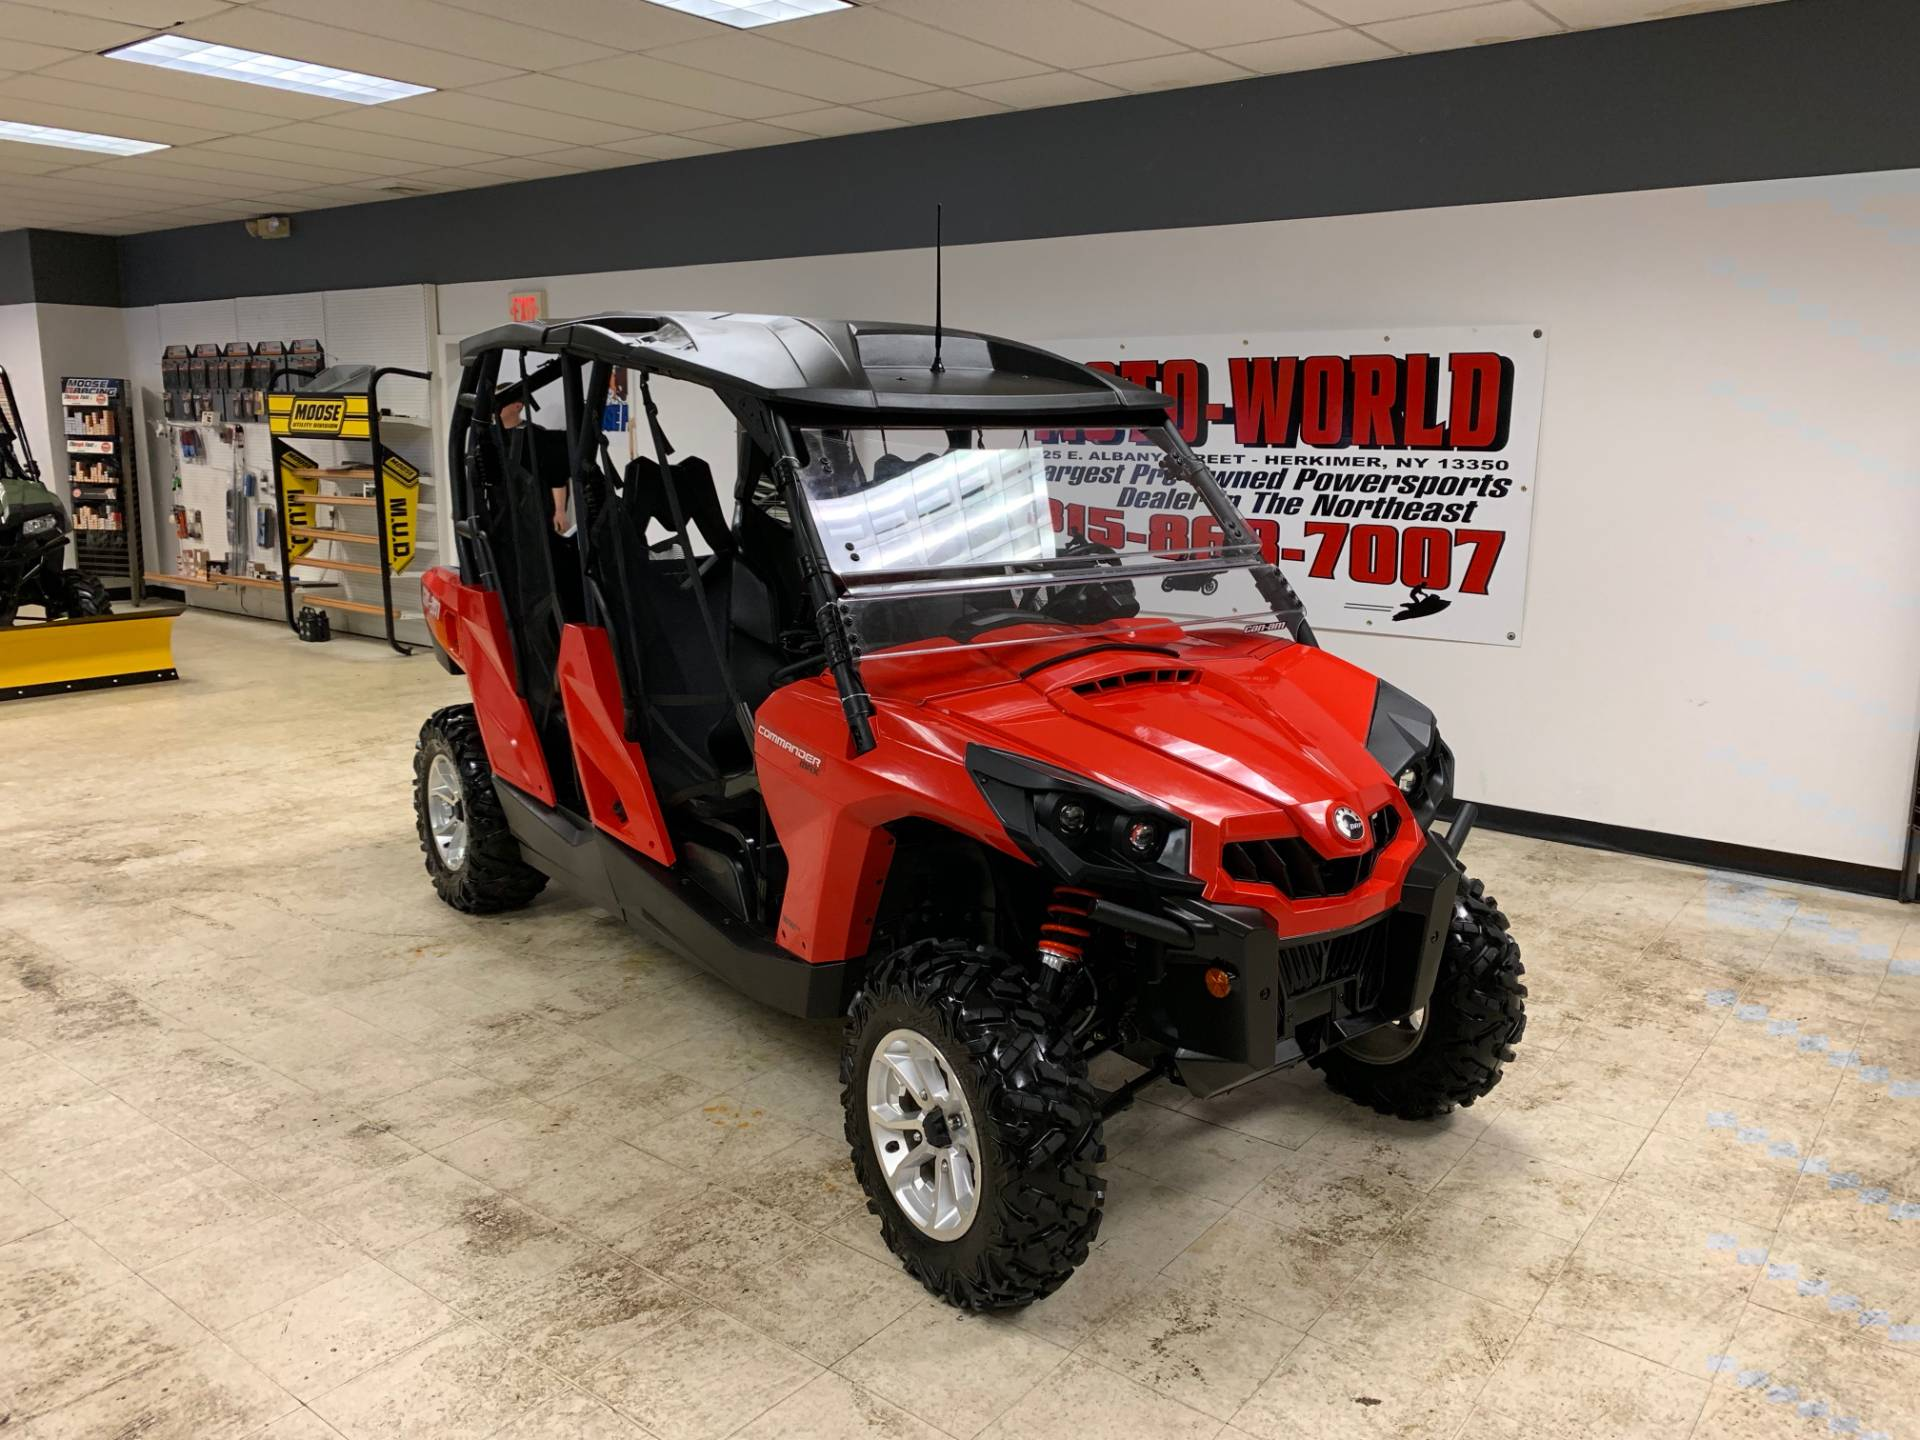 2016 Can-Am Commander MAX DPS 800R in Herkimer, New York